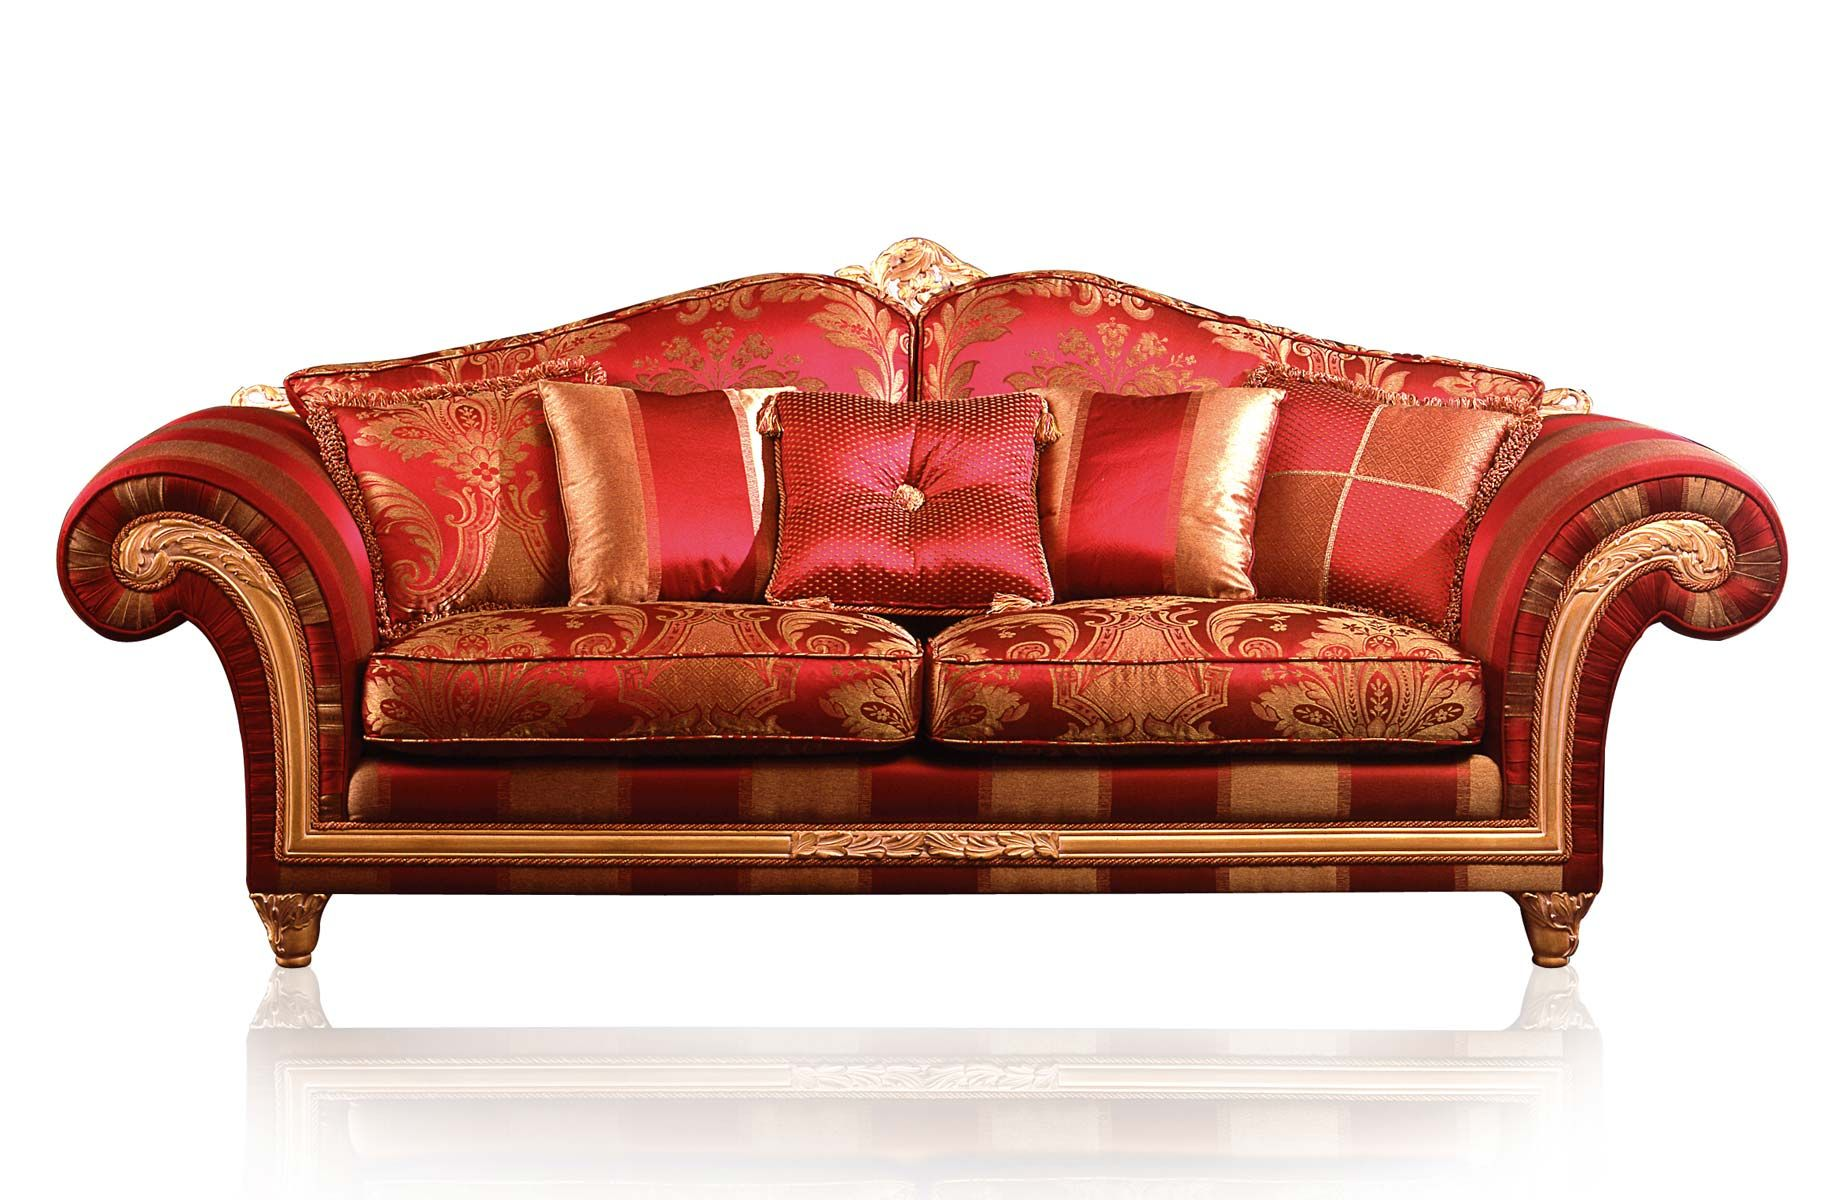 Luxury Classic Sofa and Armchairs – Imperial by Vimercati Media